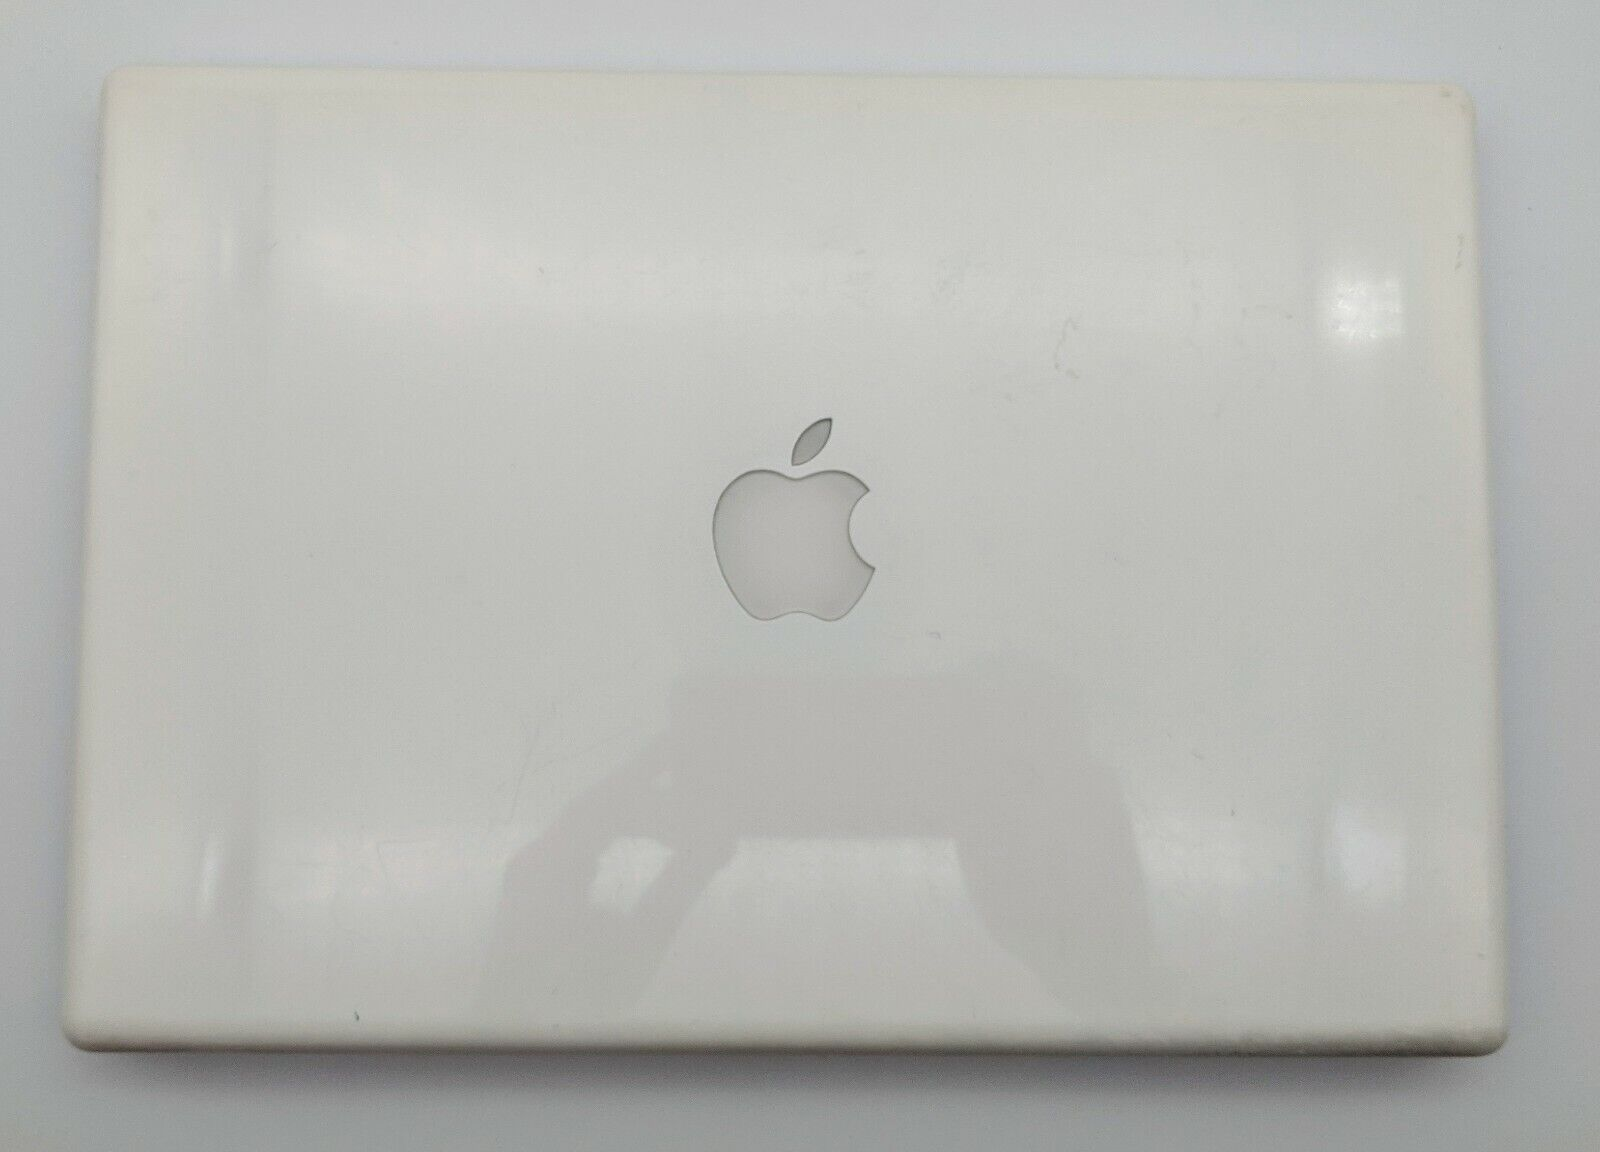 """Apple MacBook A1181 2007 Laptop 13.3"""" White Laptop NO HDD BATTERY FOR PARTS"""